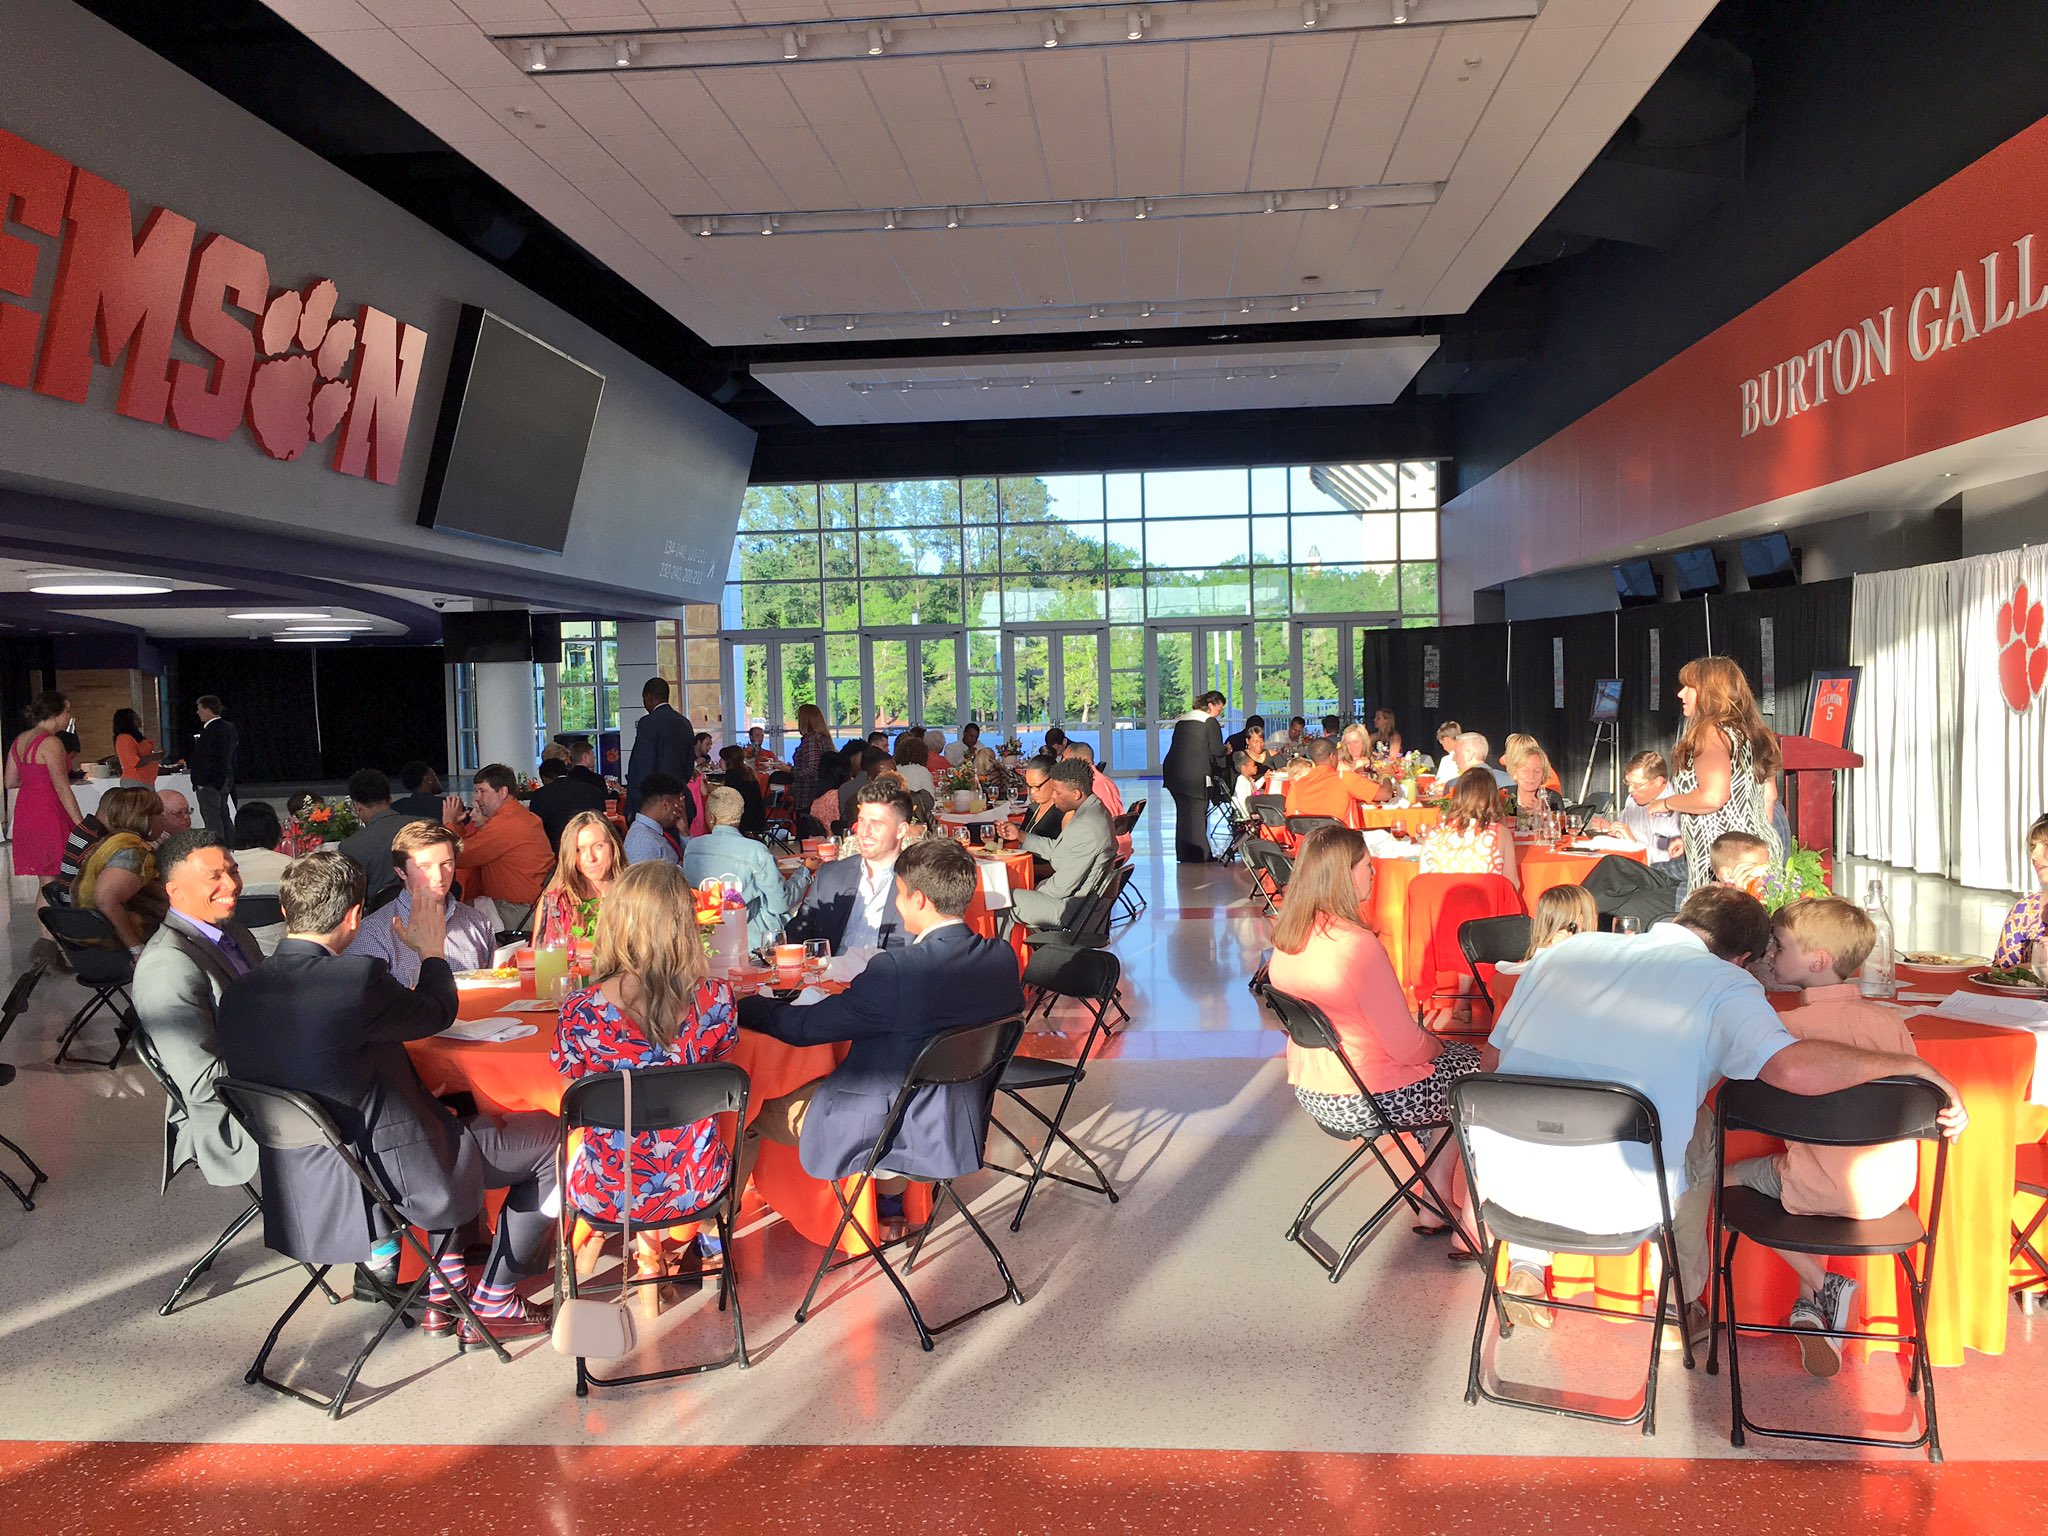 Gathering in Burton Gallery for our annual team banquet. Great job by our administrative specialist Susan Ruark on the setup! 🐾 https://t.co/8X9OgxsX8p